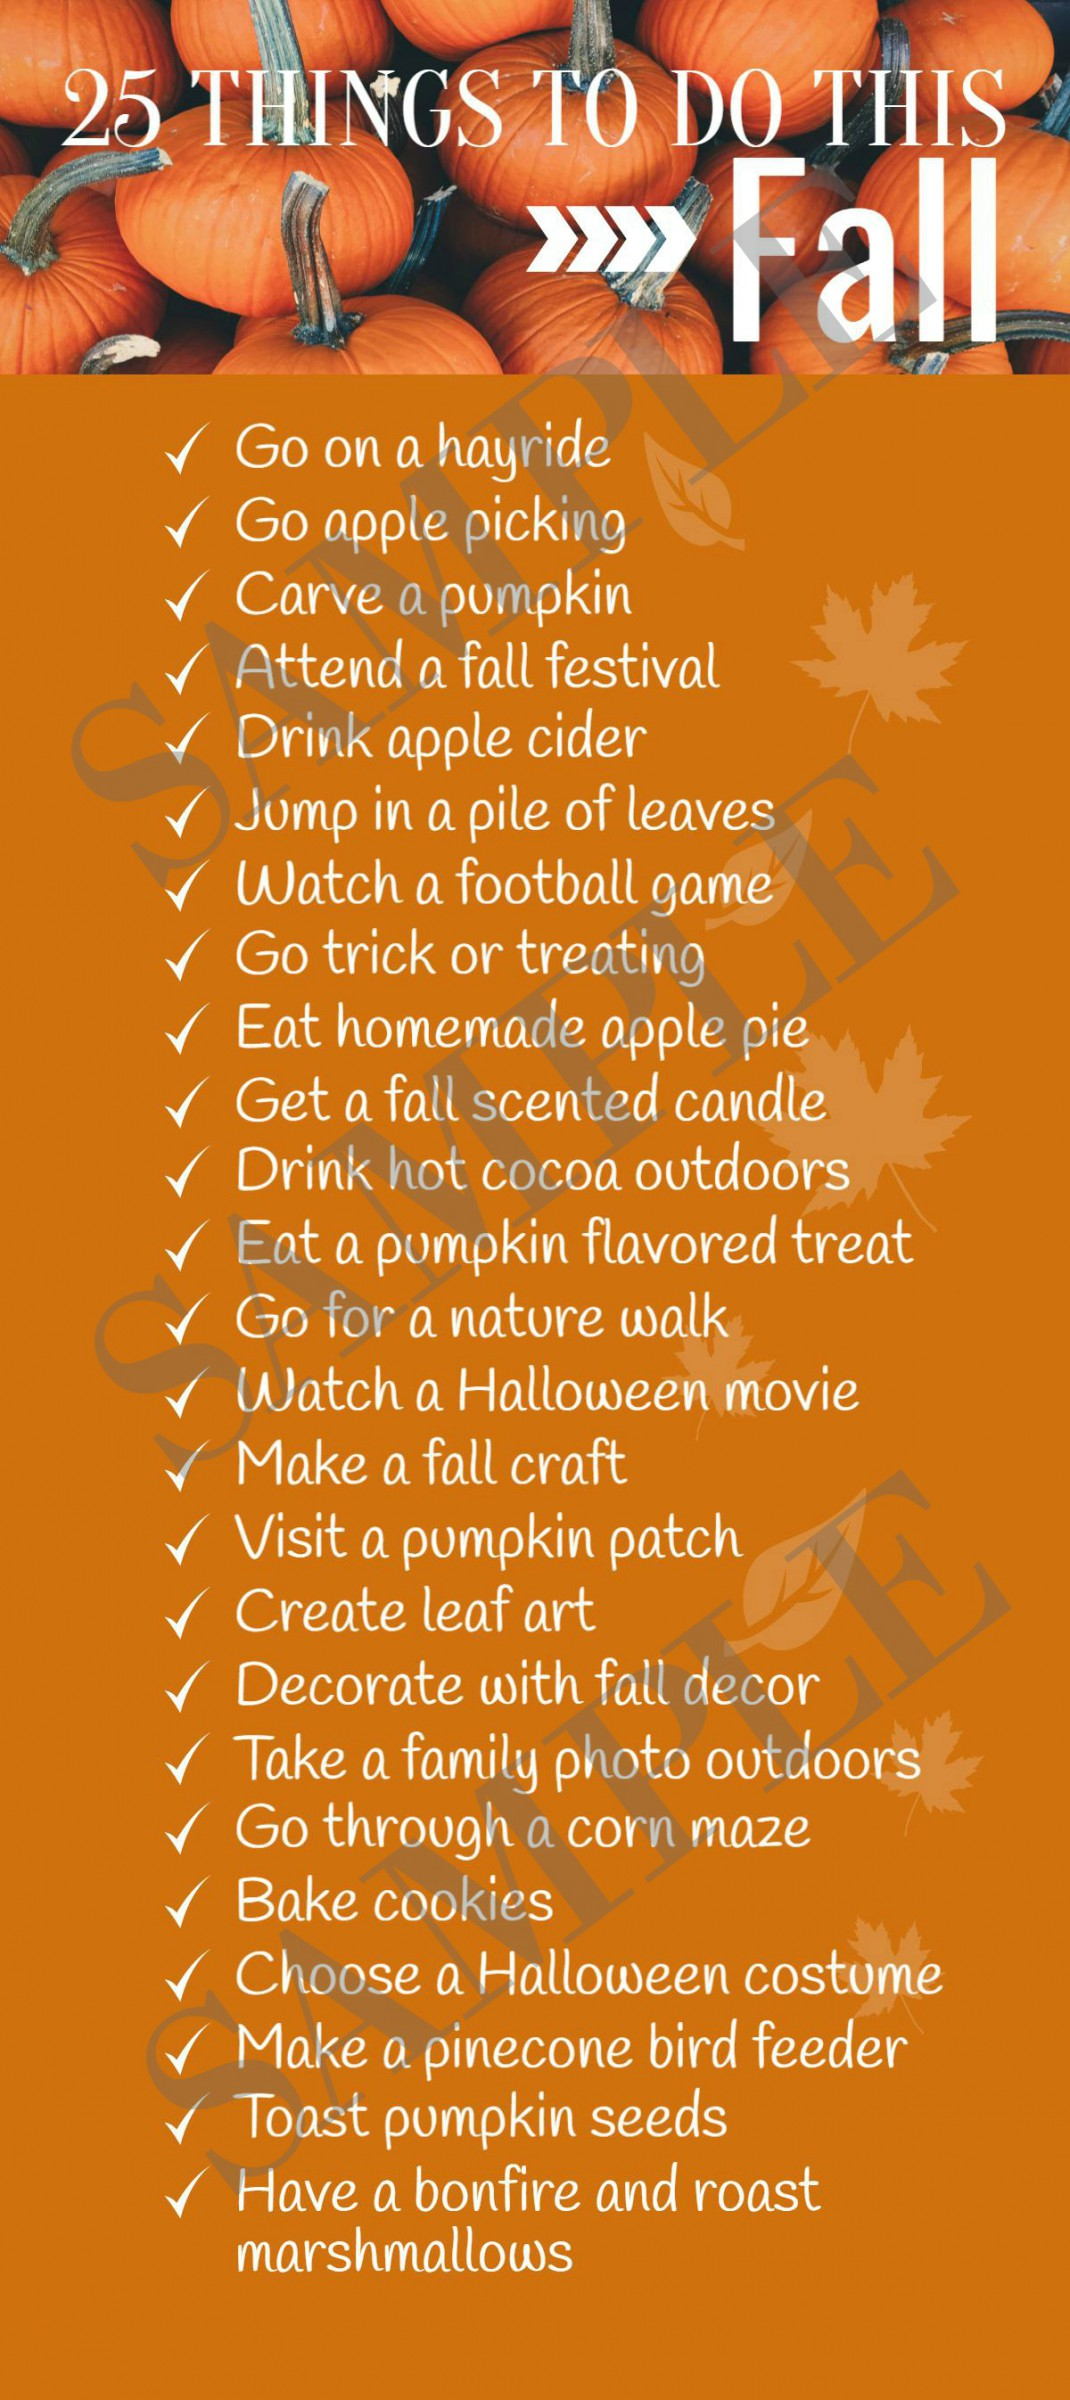 25ThingsToDoThisFall_Sample4